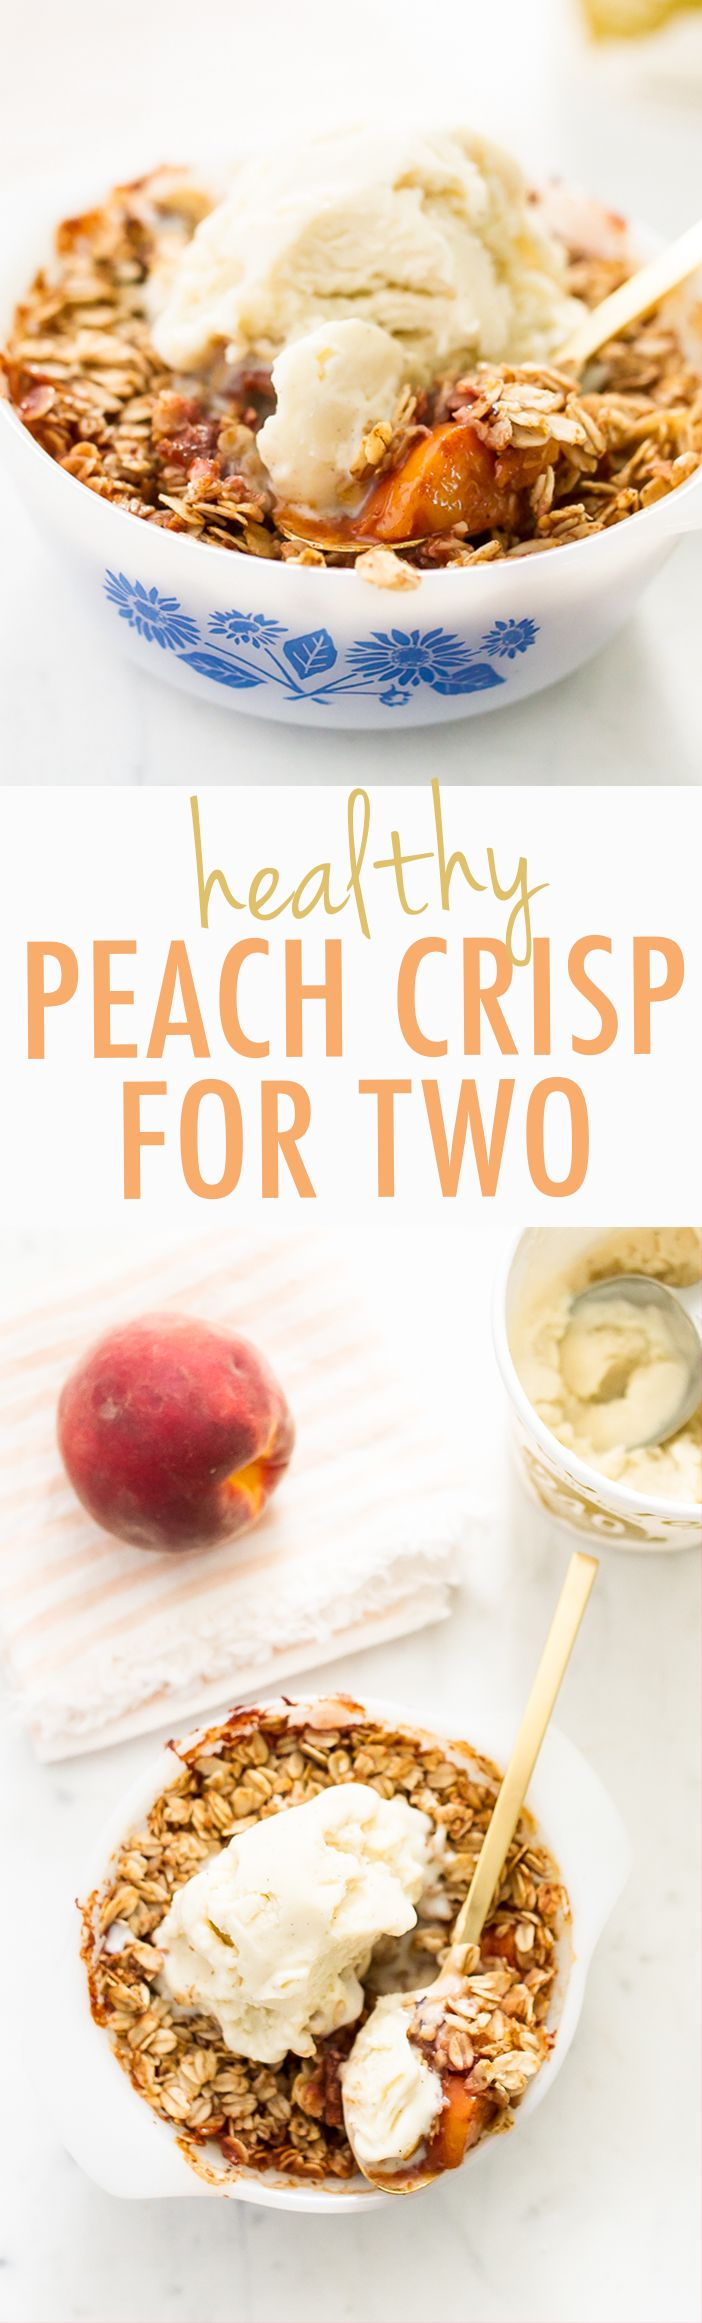 Healthy Peach Crispy for Two People! Perfect for date night. #glutenfree and #vegan